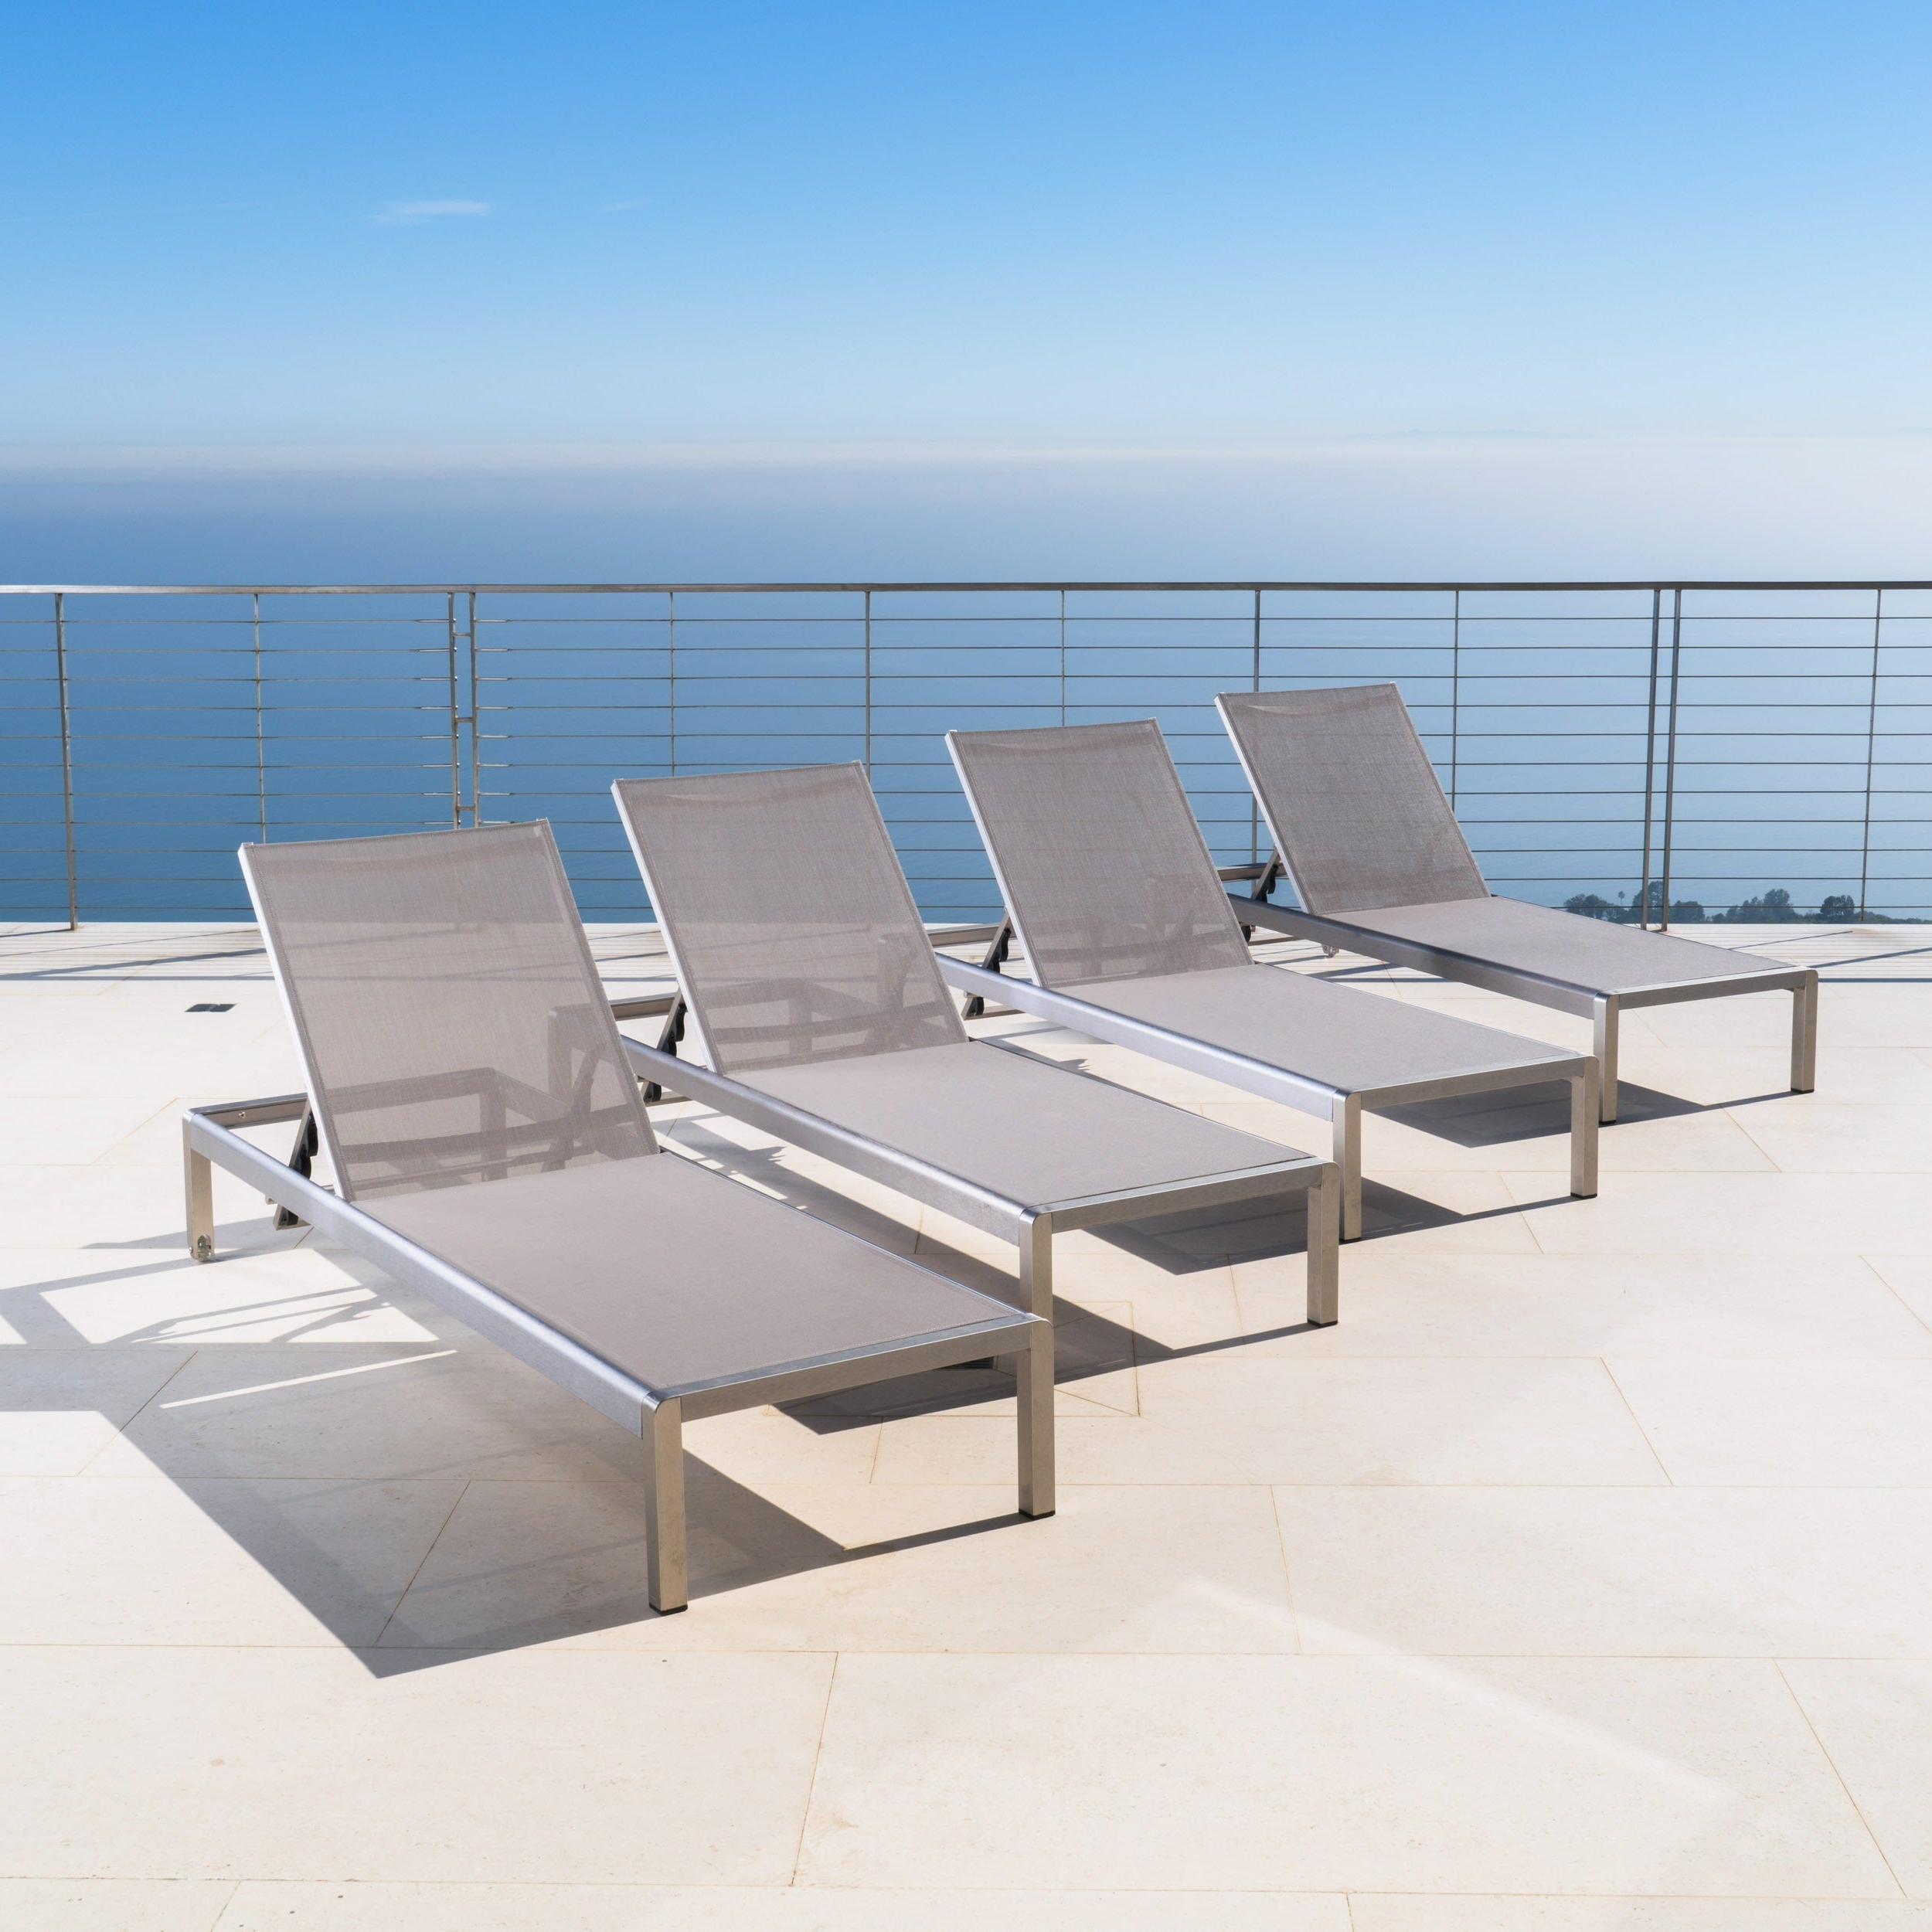 Well Known Cape Coral Outdoor Aluminum Adjustable Chaise Lounge (Set Of 4) Christopher Knight Home In Outdoor Aluminum Adjustable Chaise Lounges (View 22 of 25)